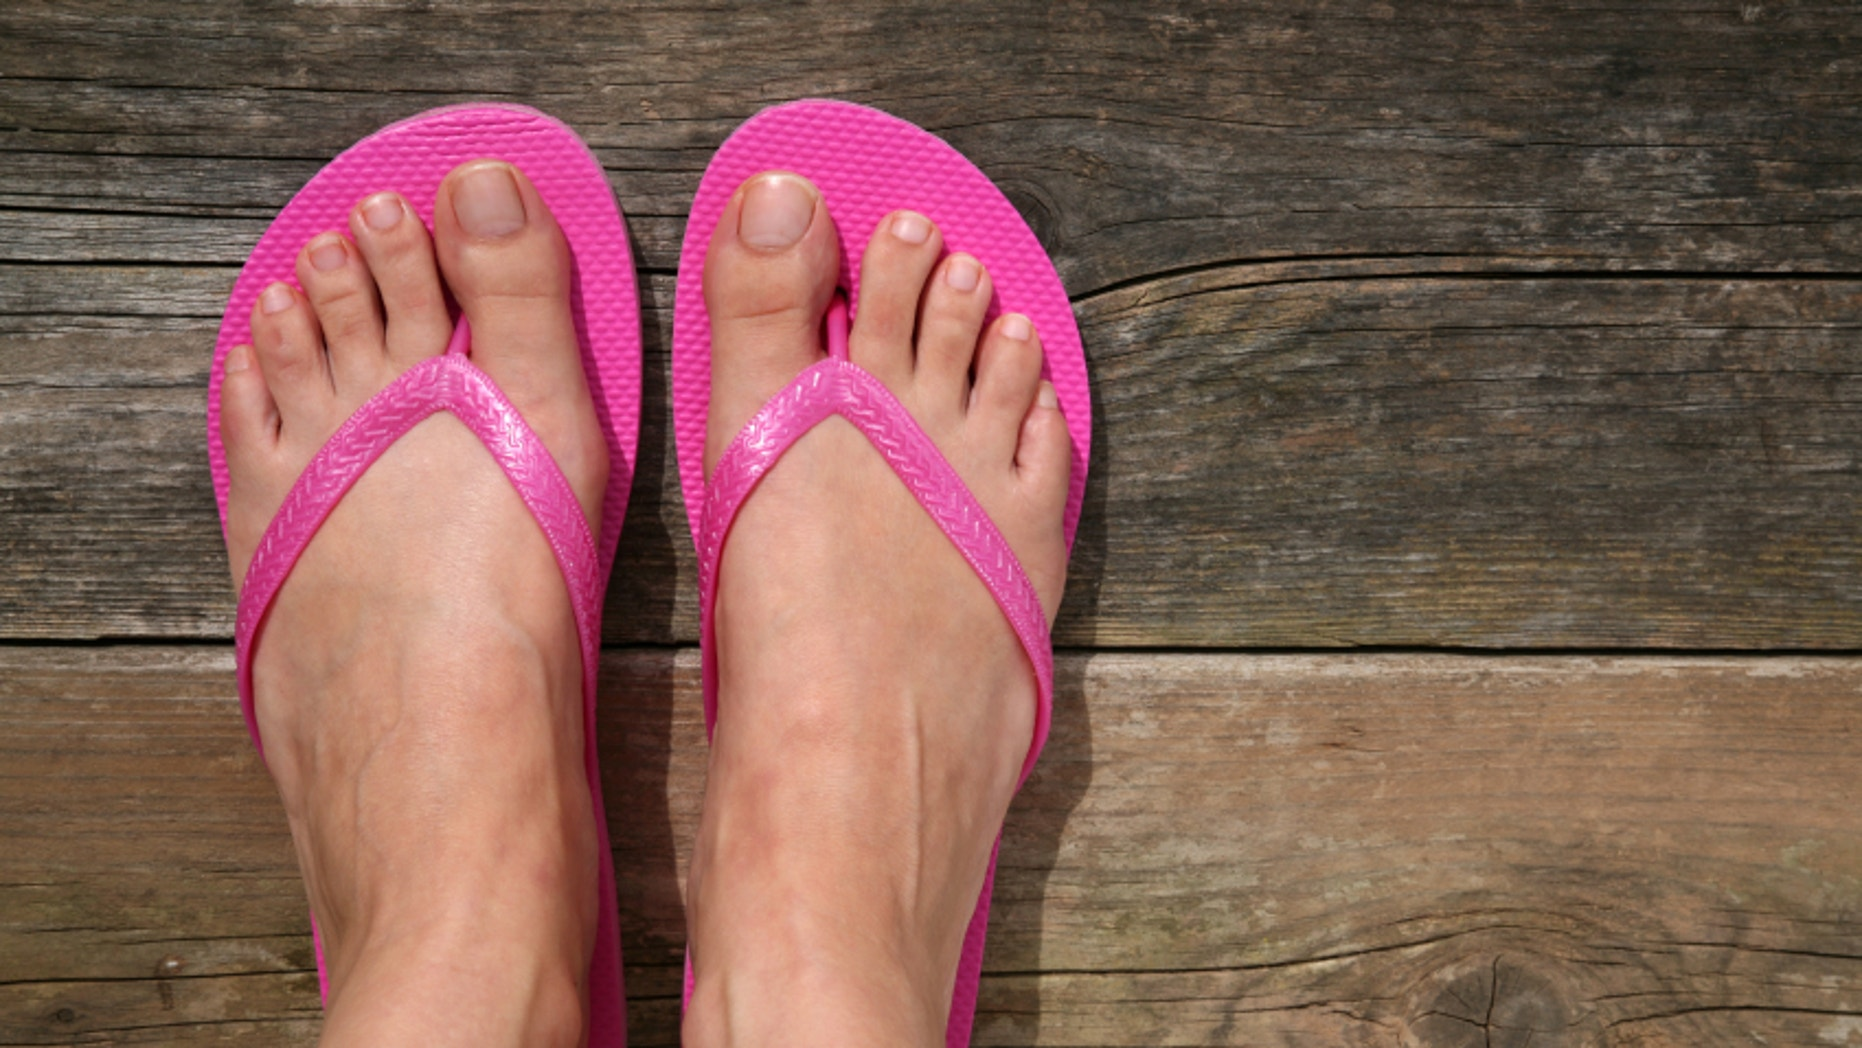 The proposed code, which bans exercise clothing and flip-flops, also mandates that hair and nails be clean and neatly groomed. And while blue jeans are explicitly prohibited, district employees can wear 'dress jeans' with no visible tears or fraying.